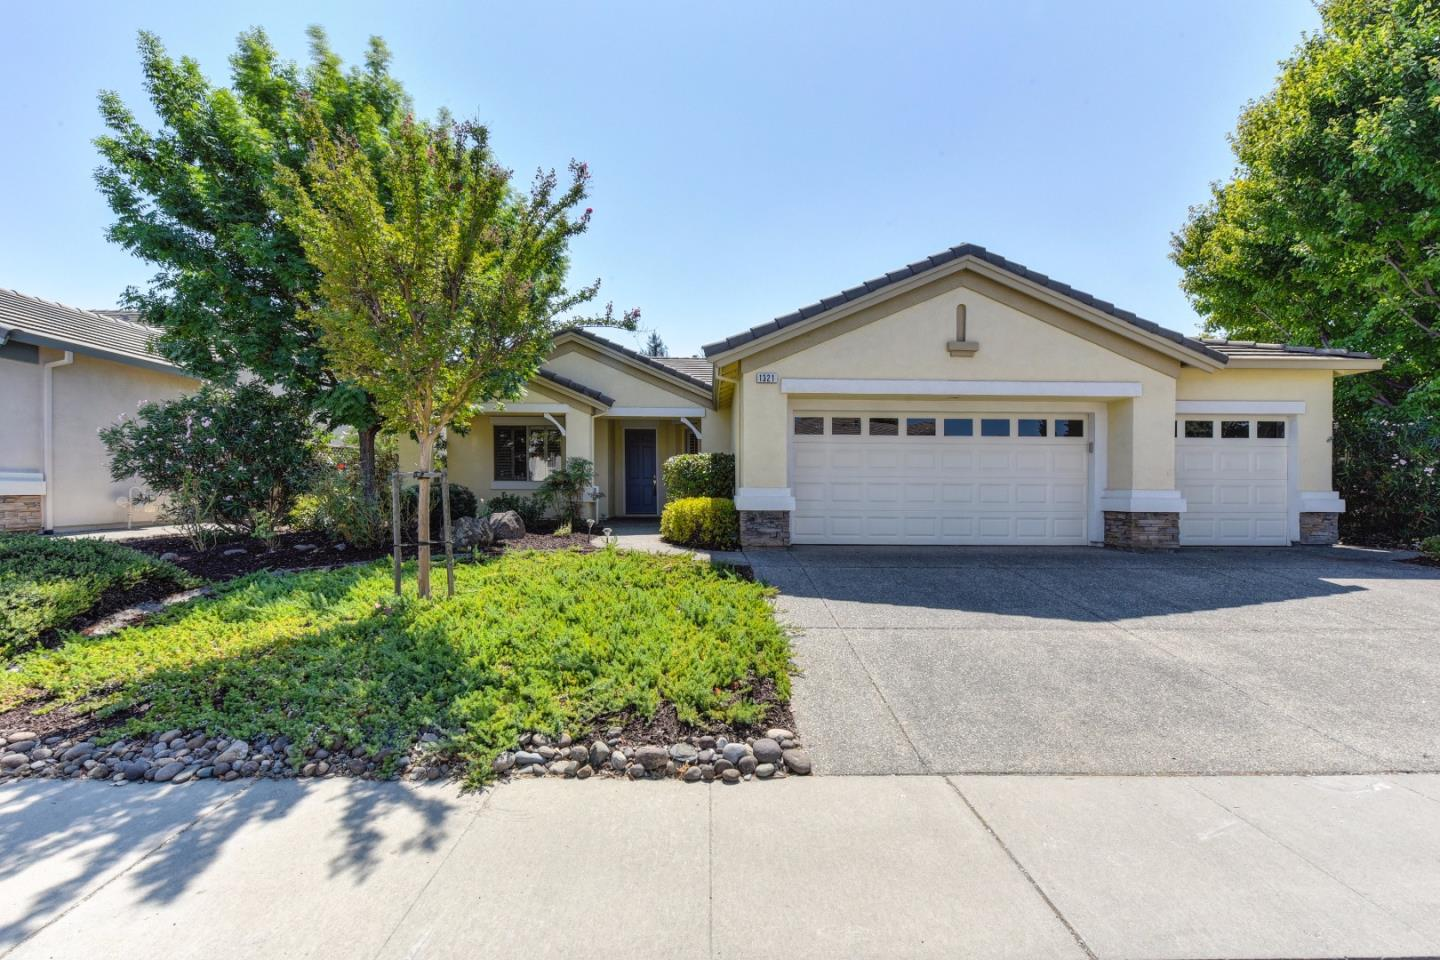 Single Family Home for Sale at 1321 Rose Bouquet Drive Lincoln, California 95648 United States